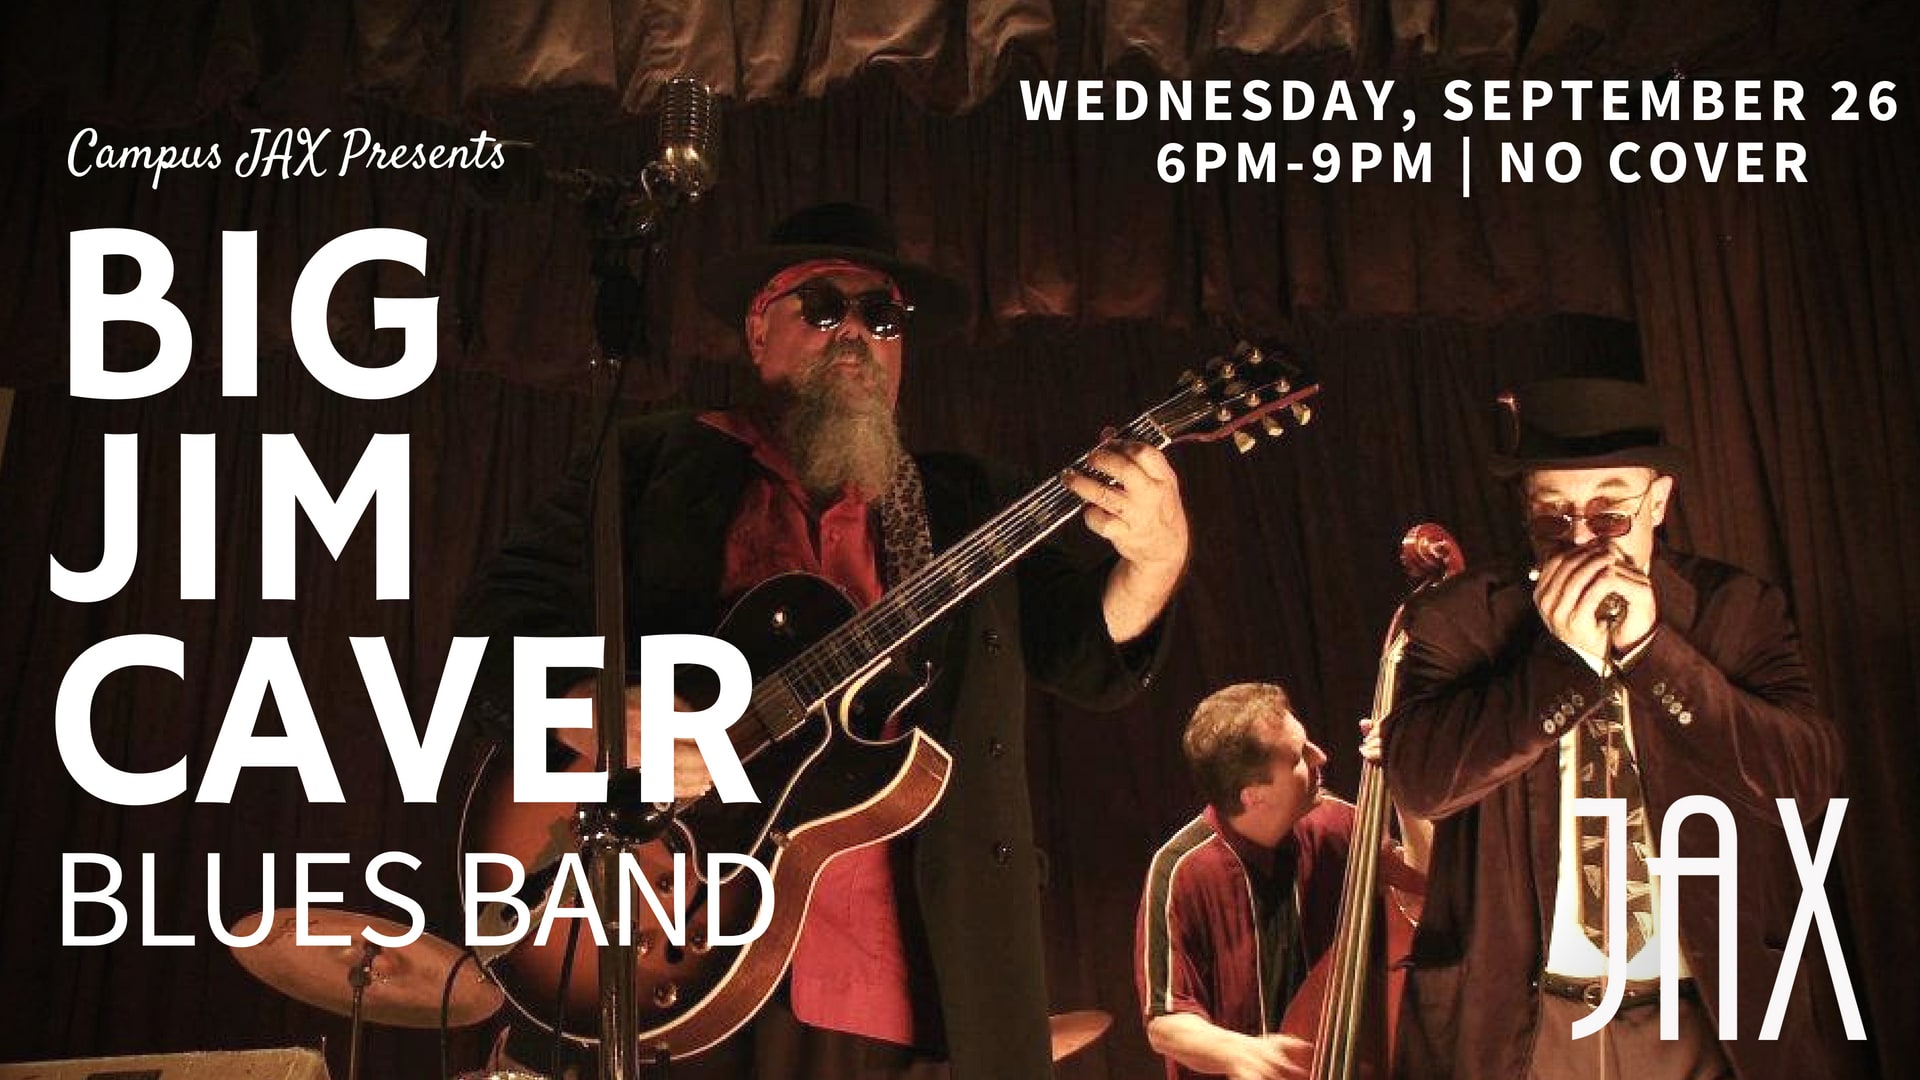 September 26 | WEDNESDAY NIGHT BLUES with the BIG JIM CAVER BAND